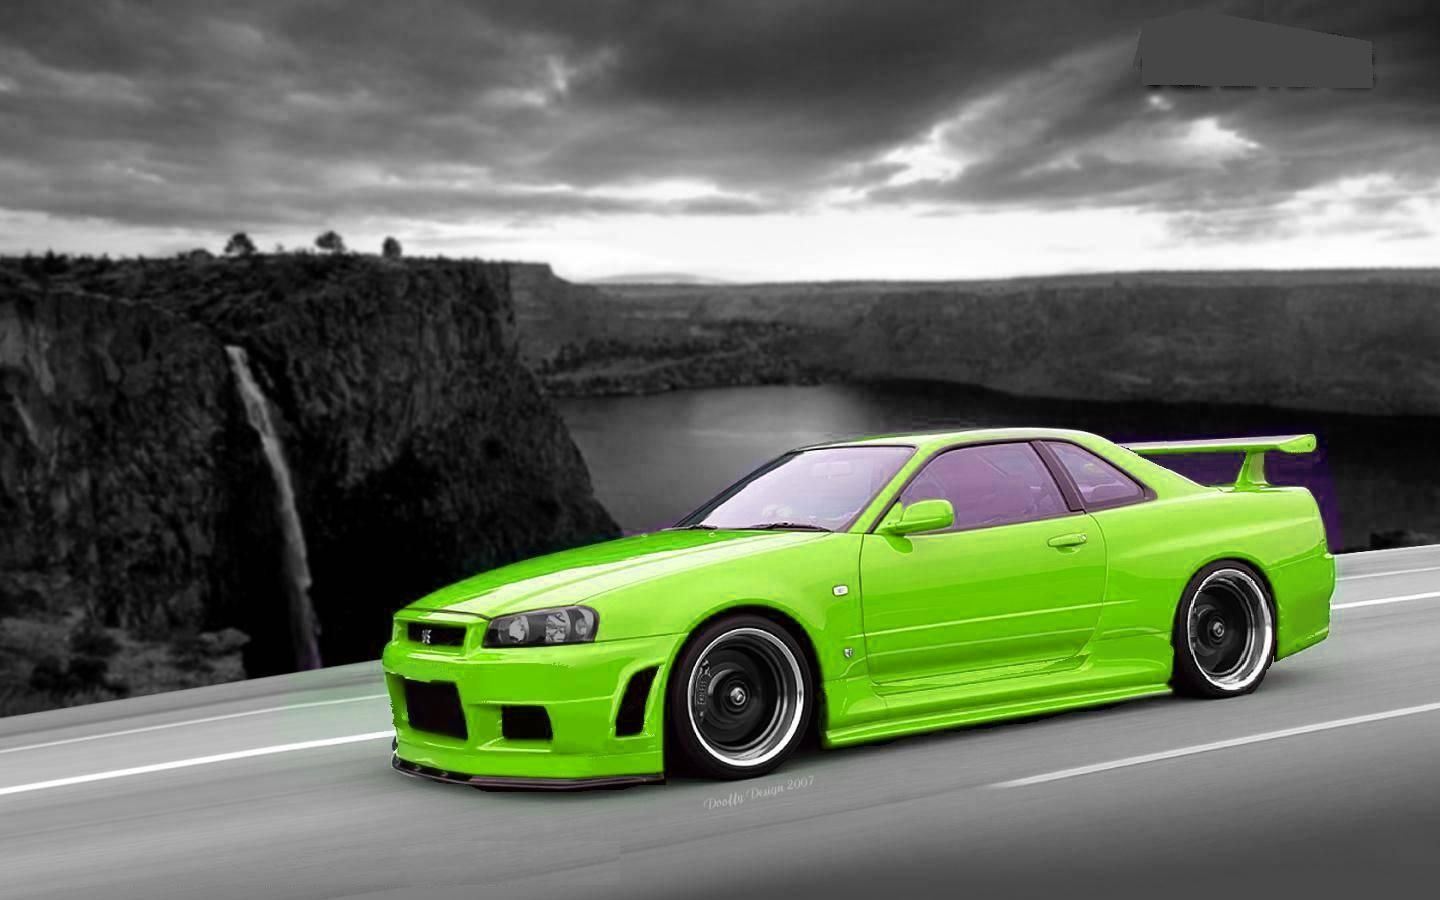 nissan skyline gtr r34 lime green and black black and white and grey background imports. Black Bedroom Furniture Sets. Home Design Ideas